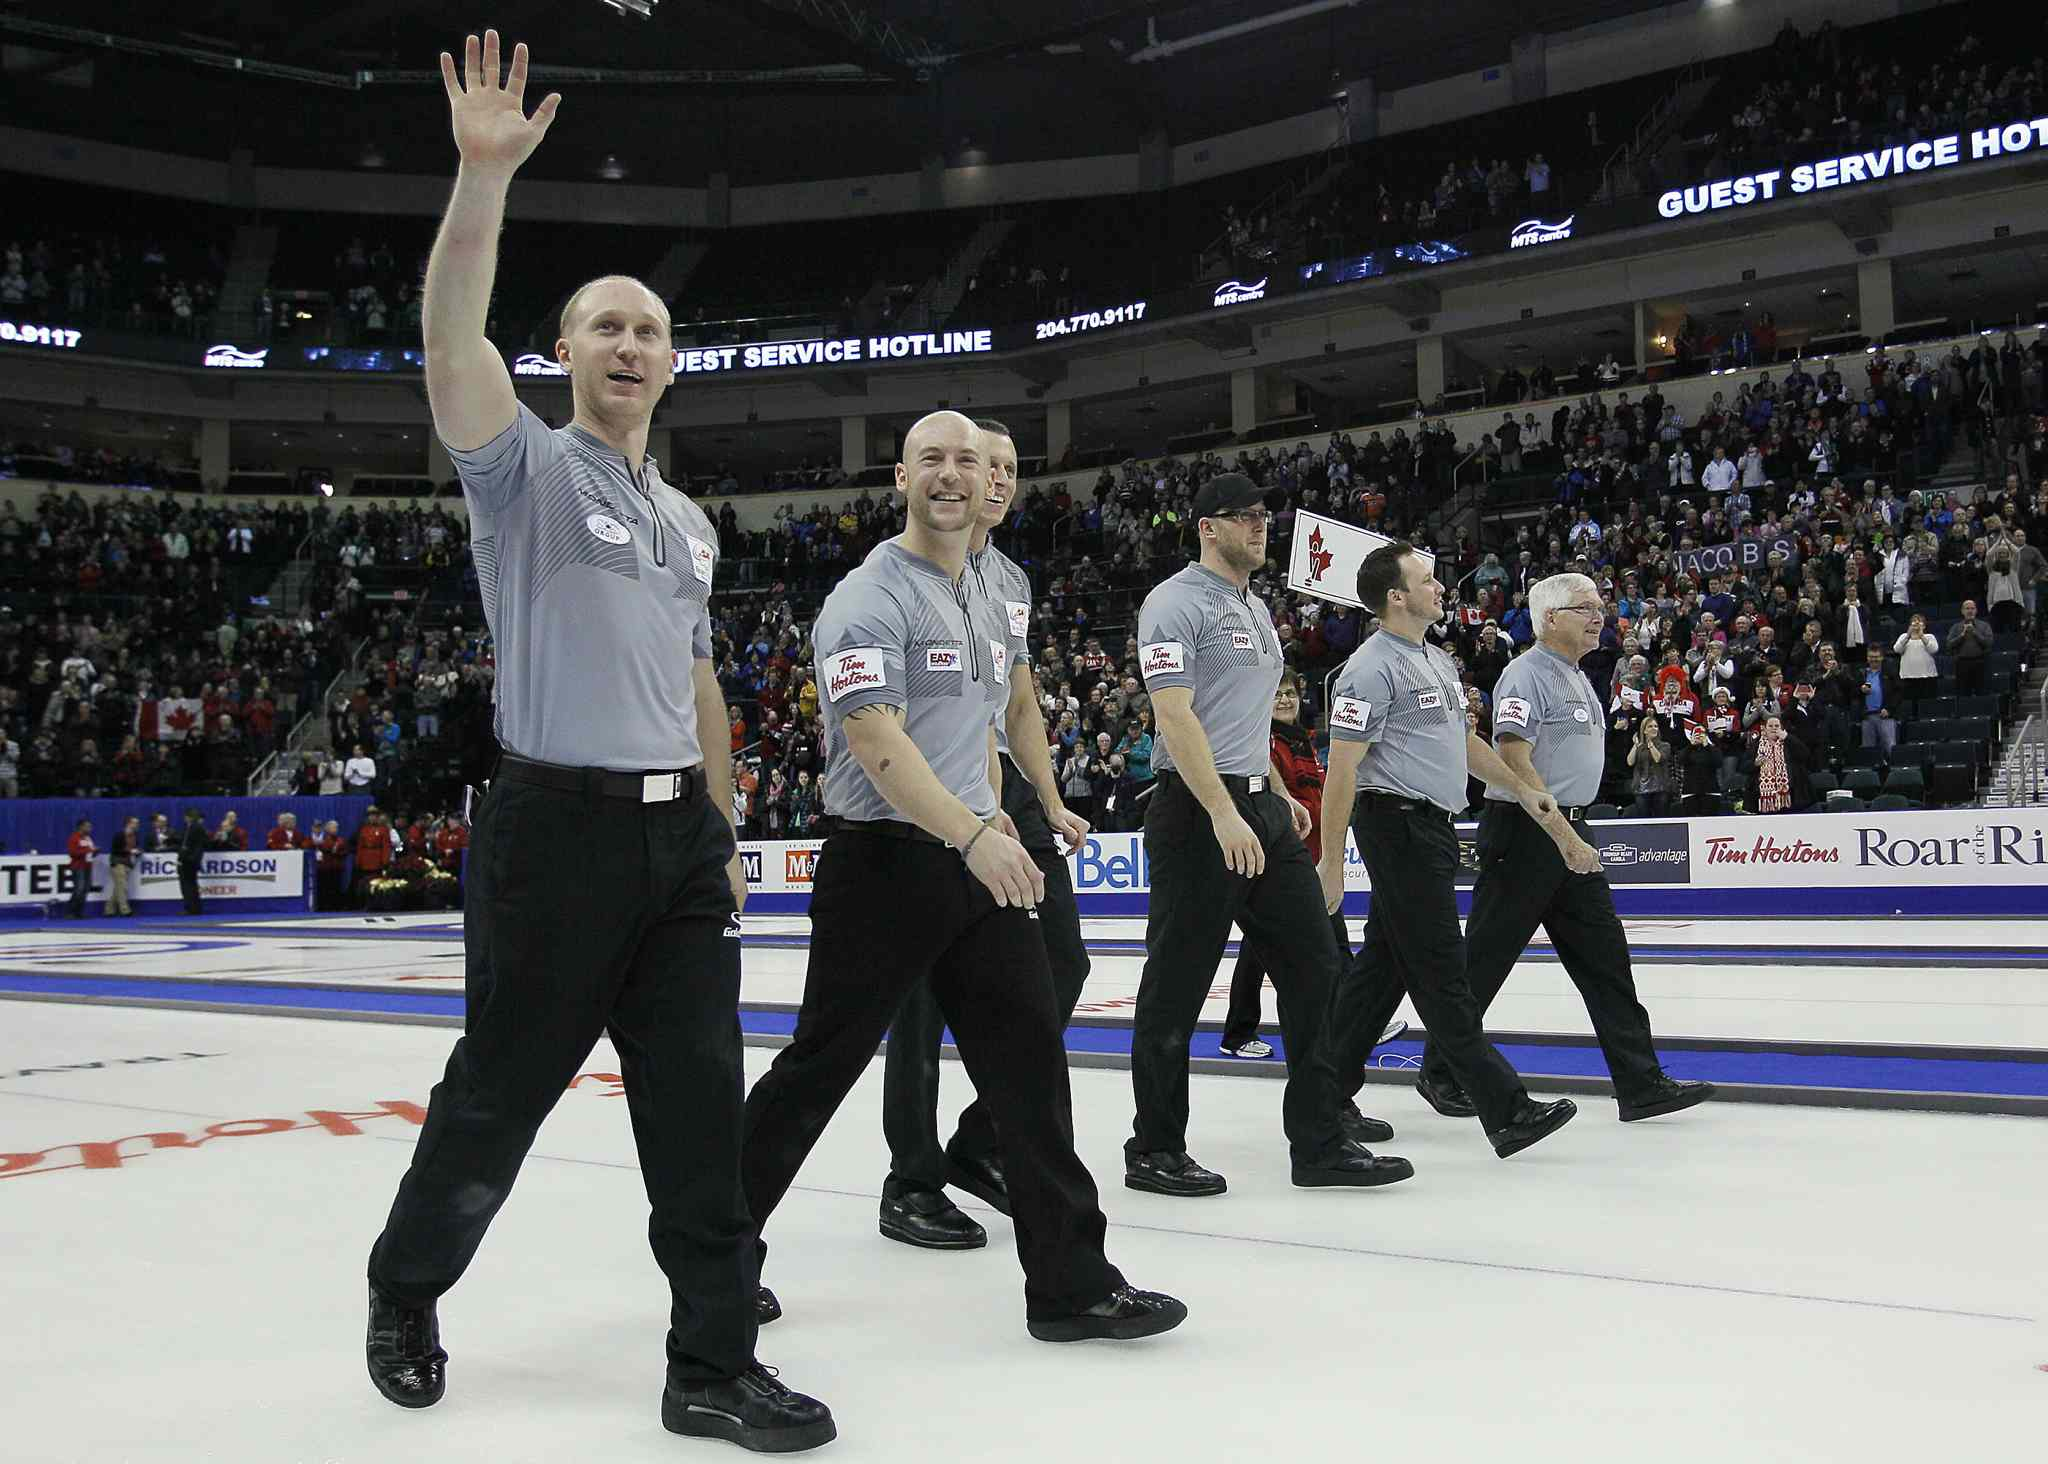 Skip Brad Jacobs (left) and his team acknowledge the crowd as they make their way down the ice after winning the final.